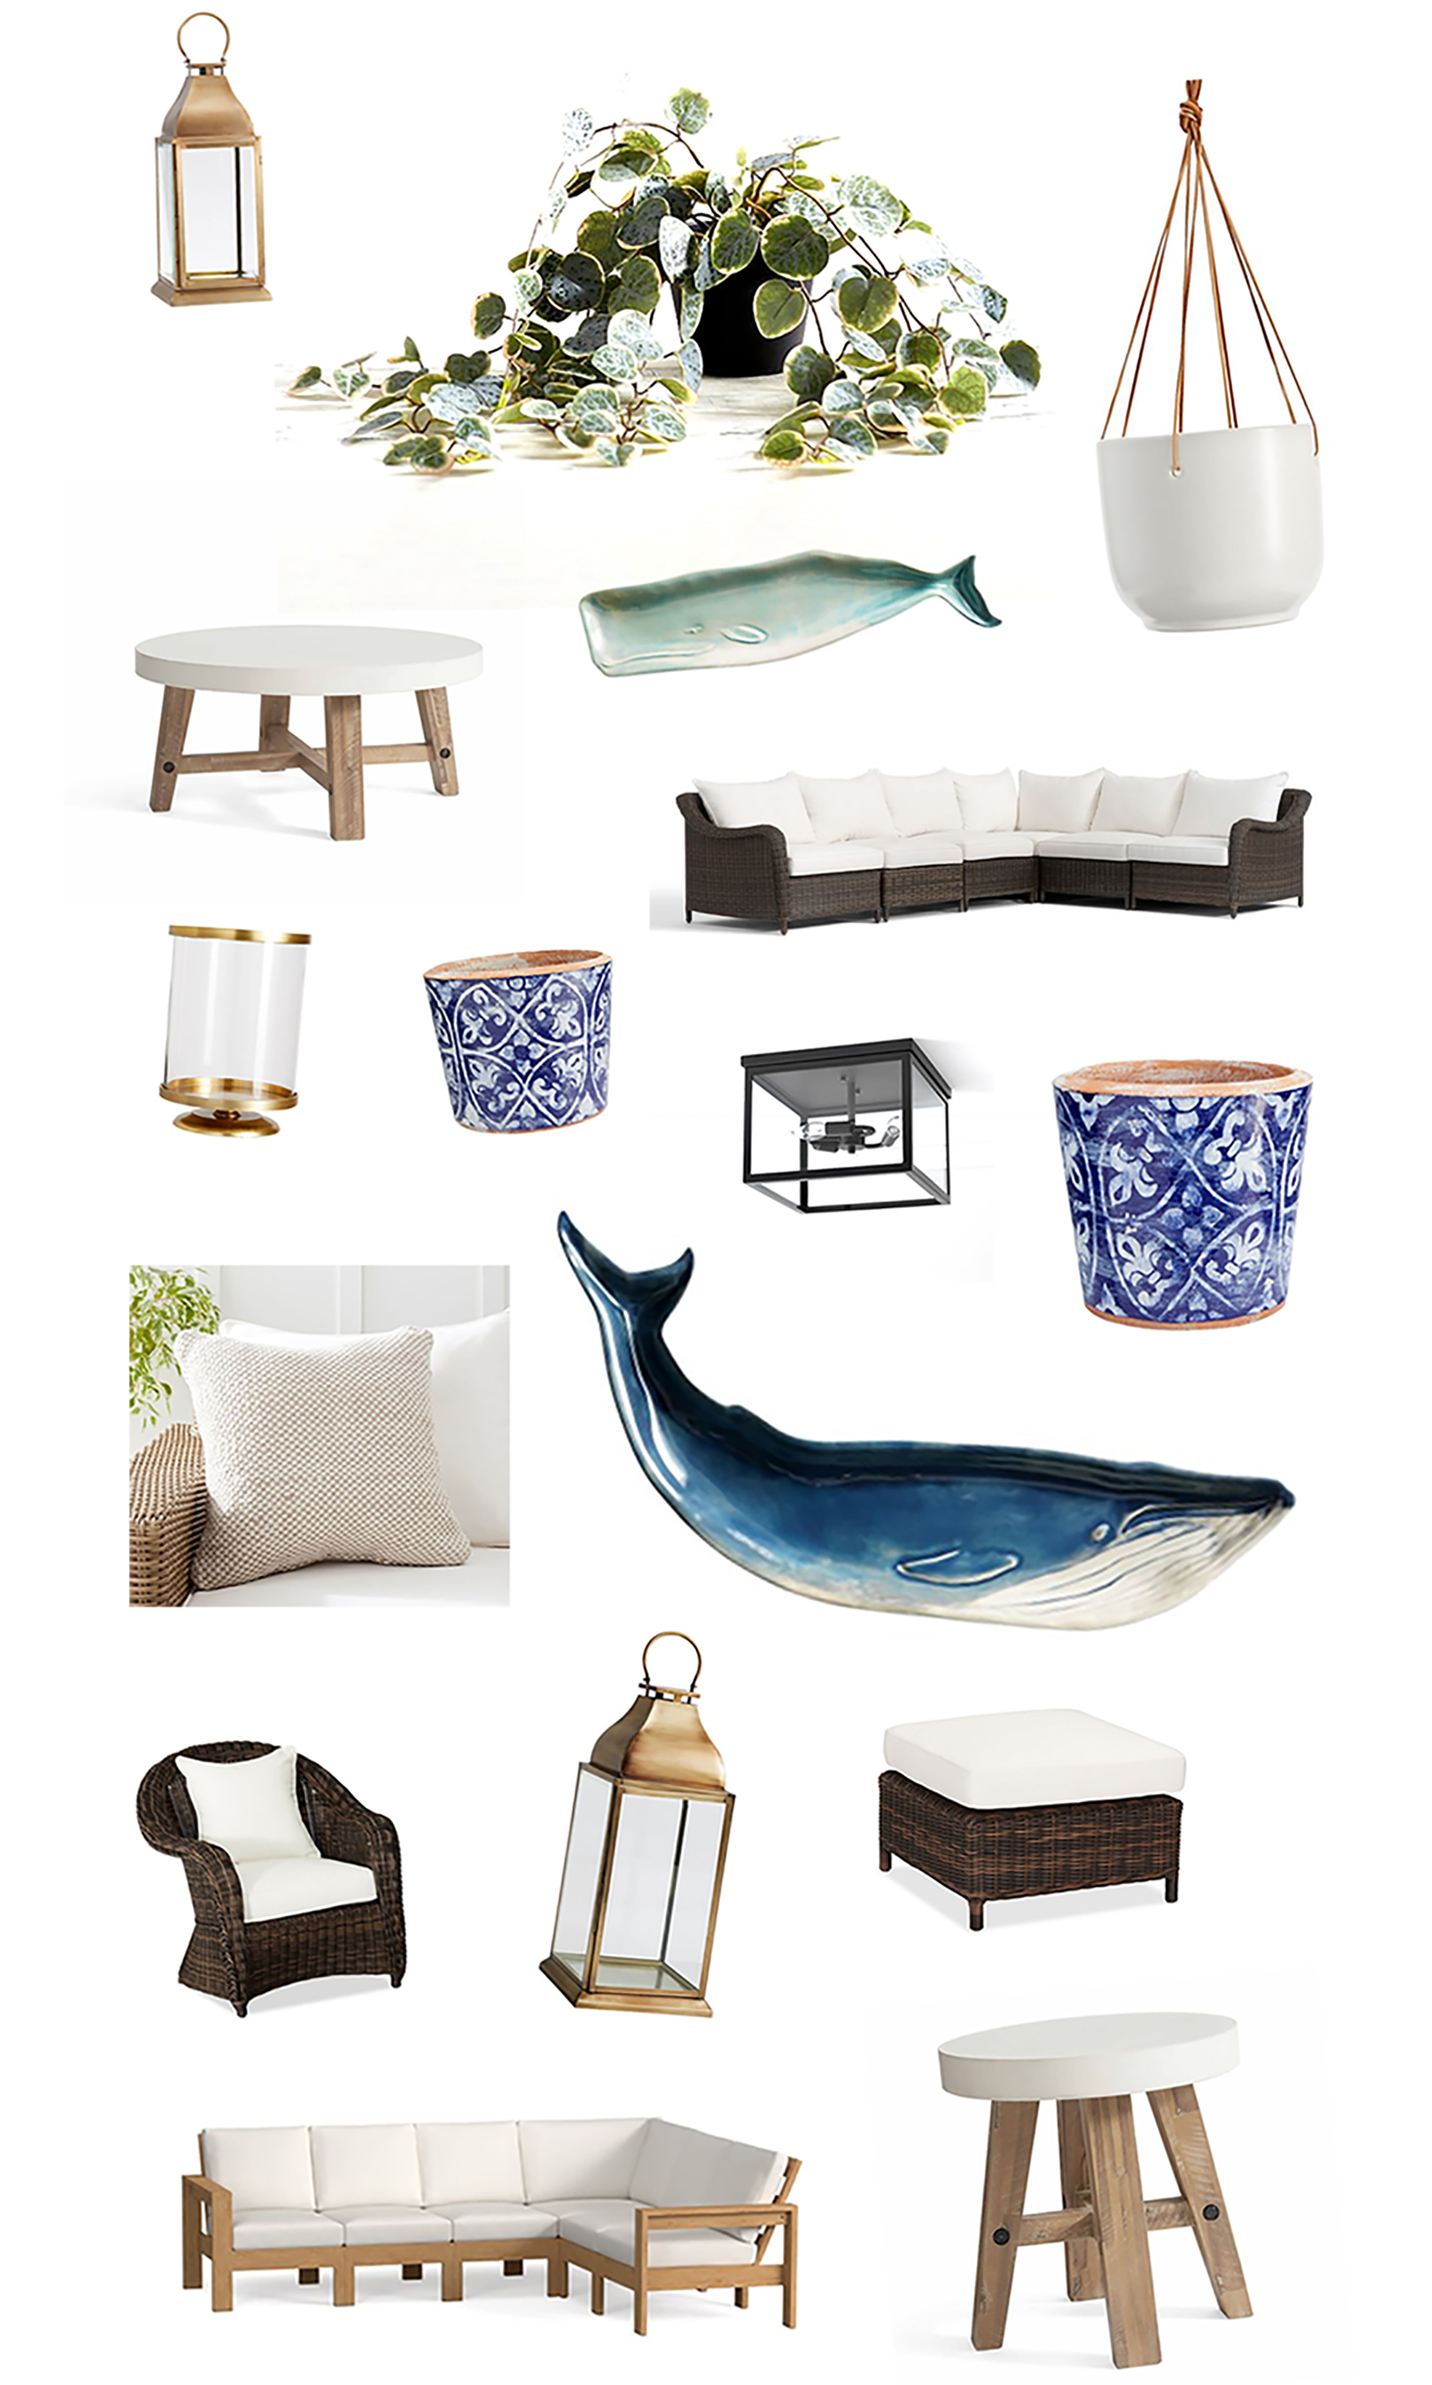 Outdoor Space Plans with Pottery Barn